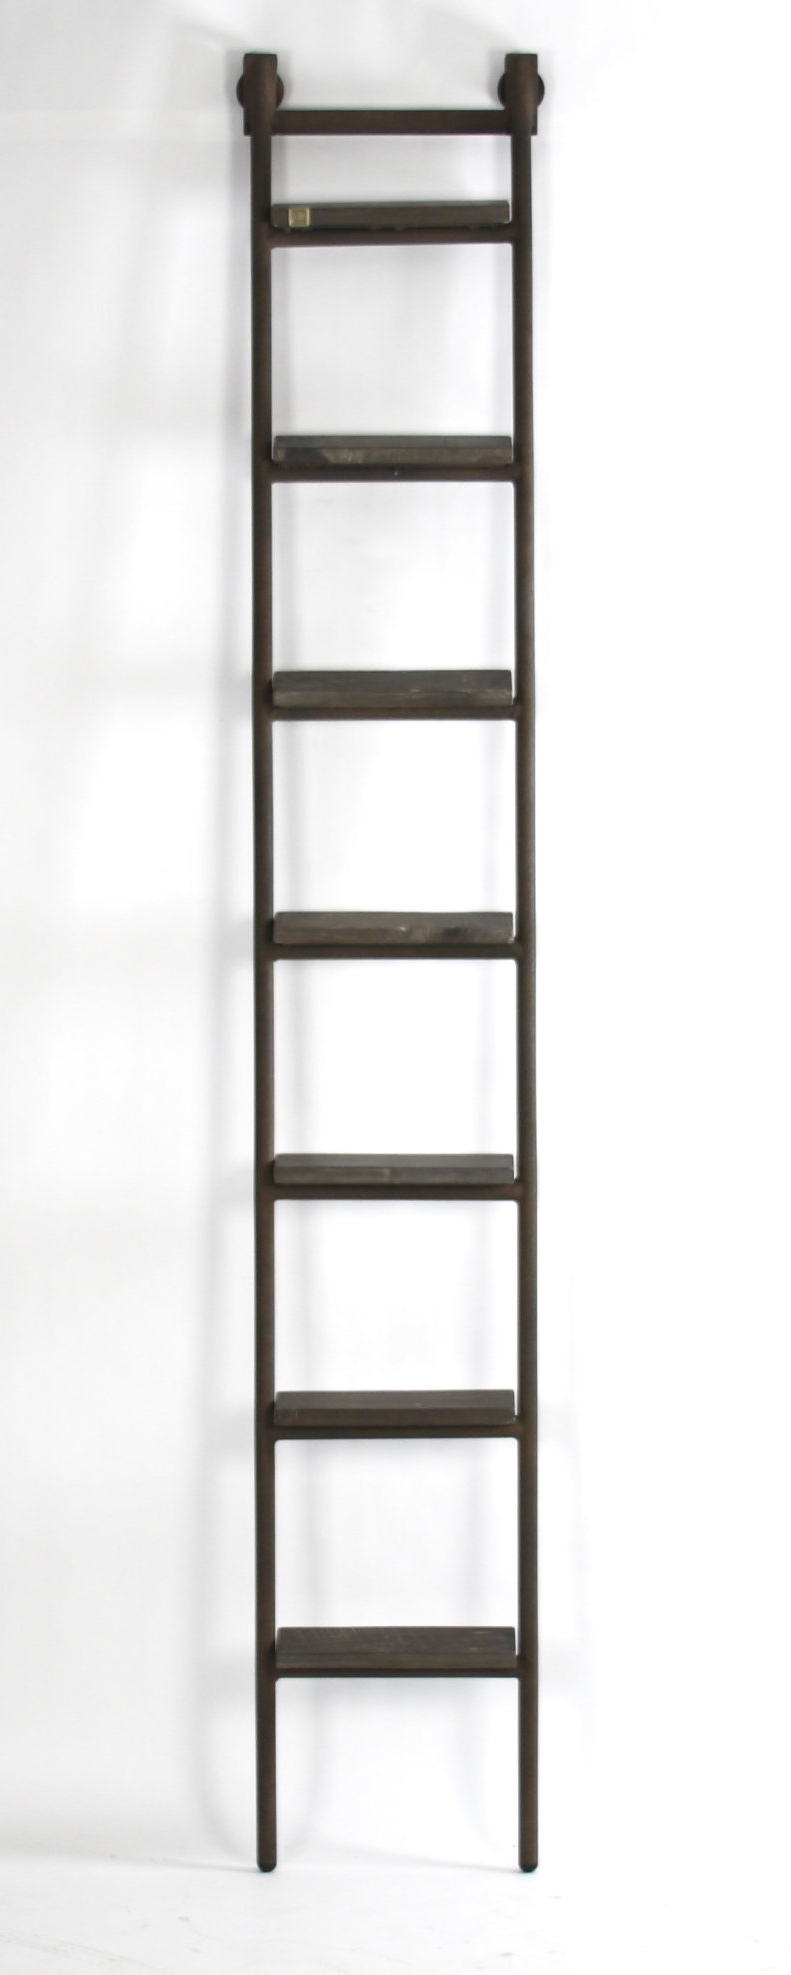 Mayna Ladder Bookcases Inside Most Up To Date Figy Ladder Bookcase (View 10 of 20)